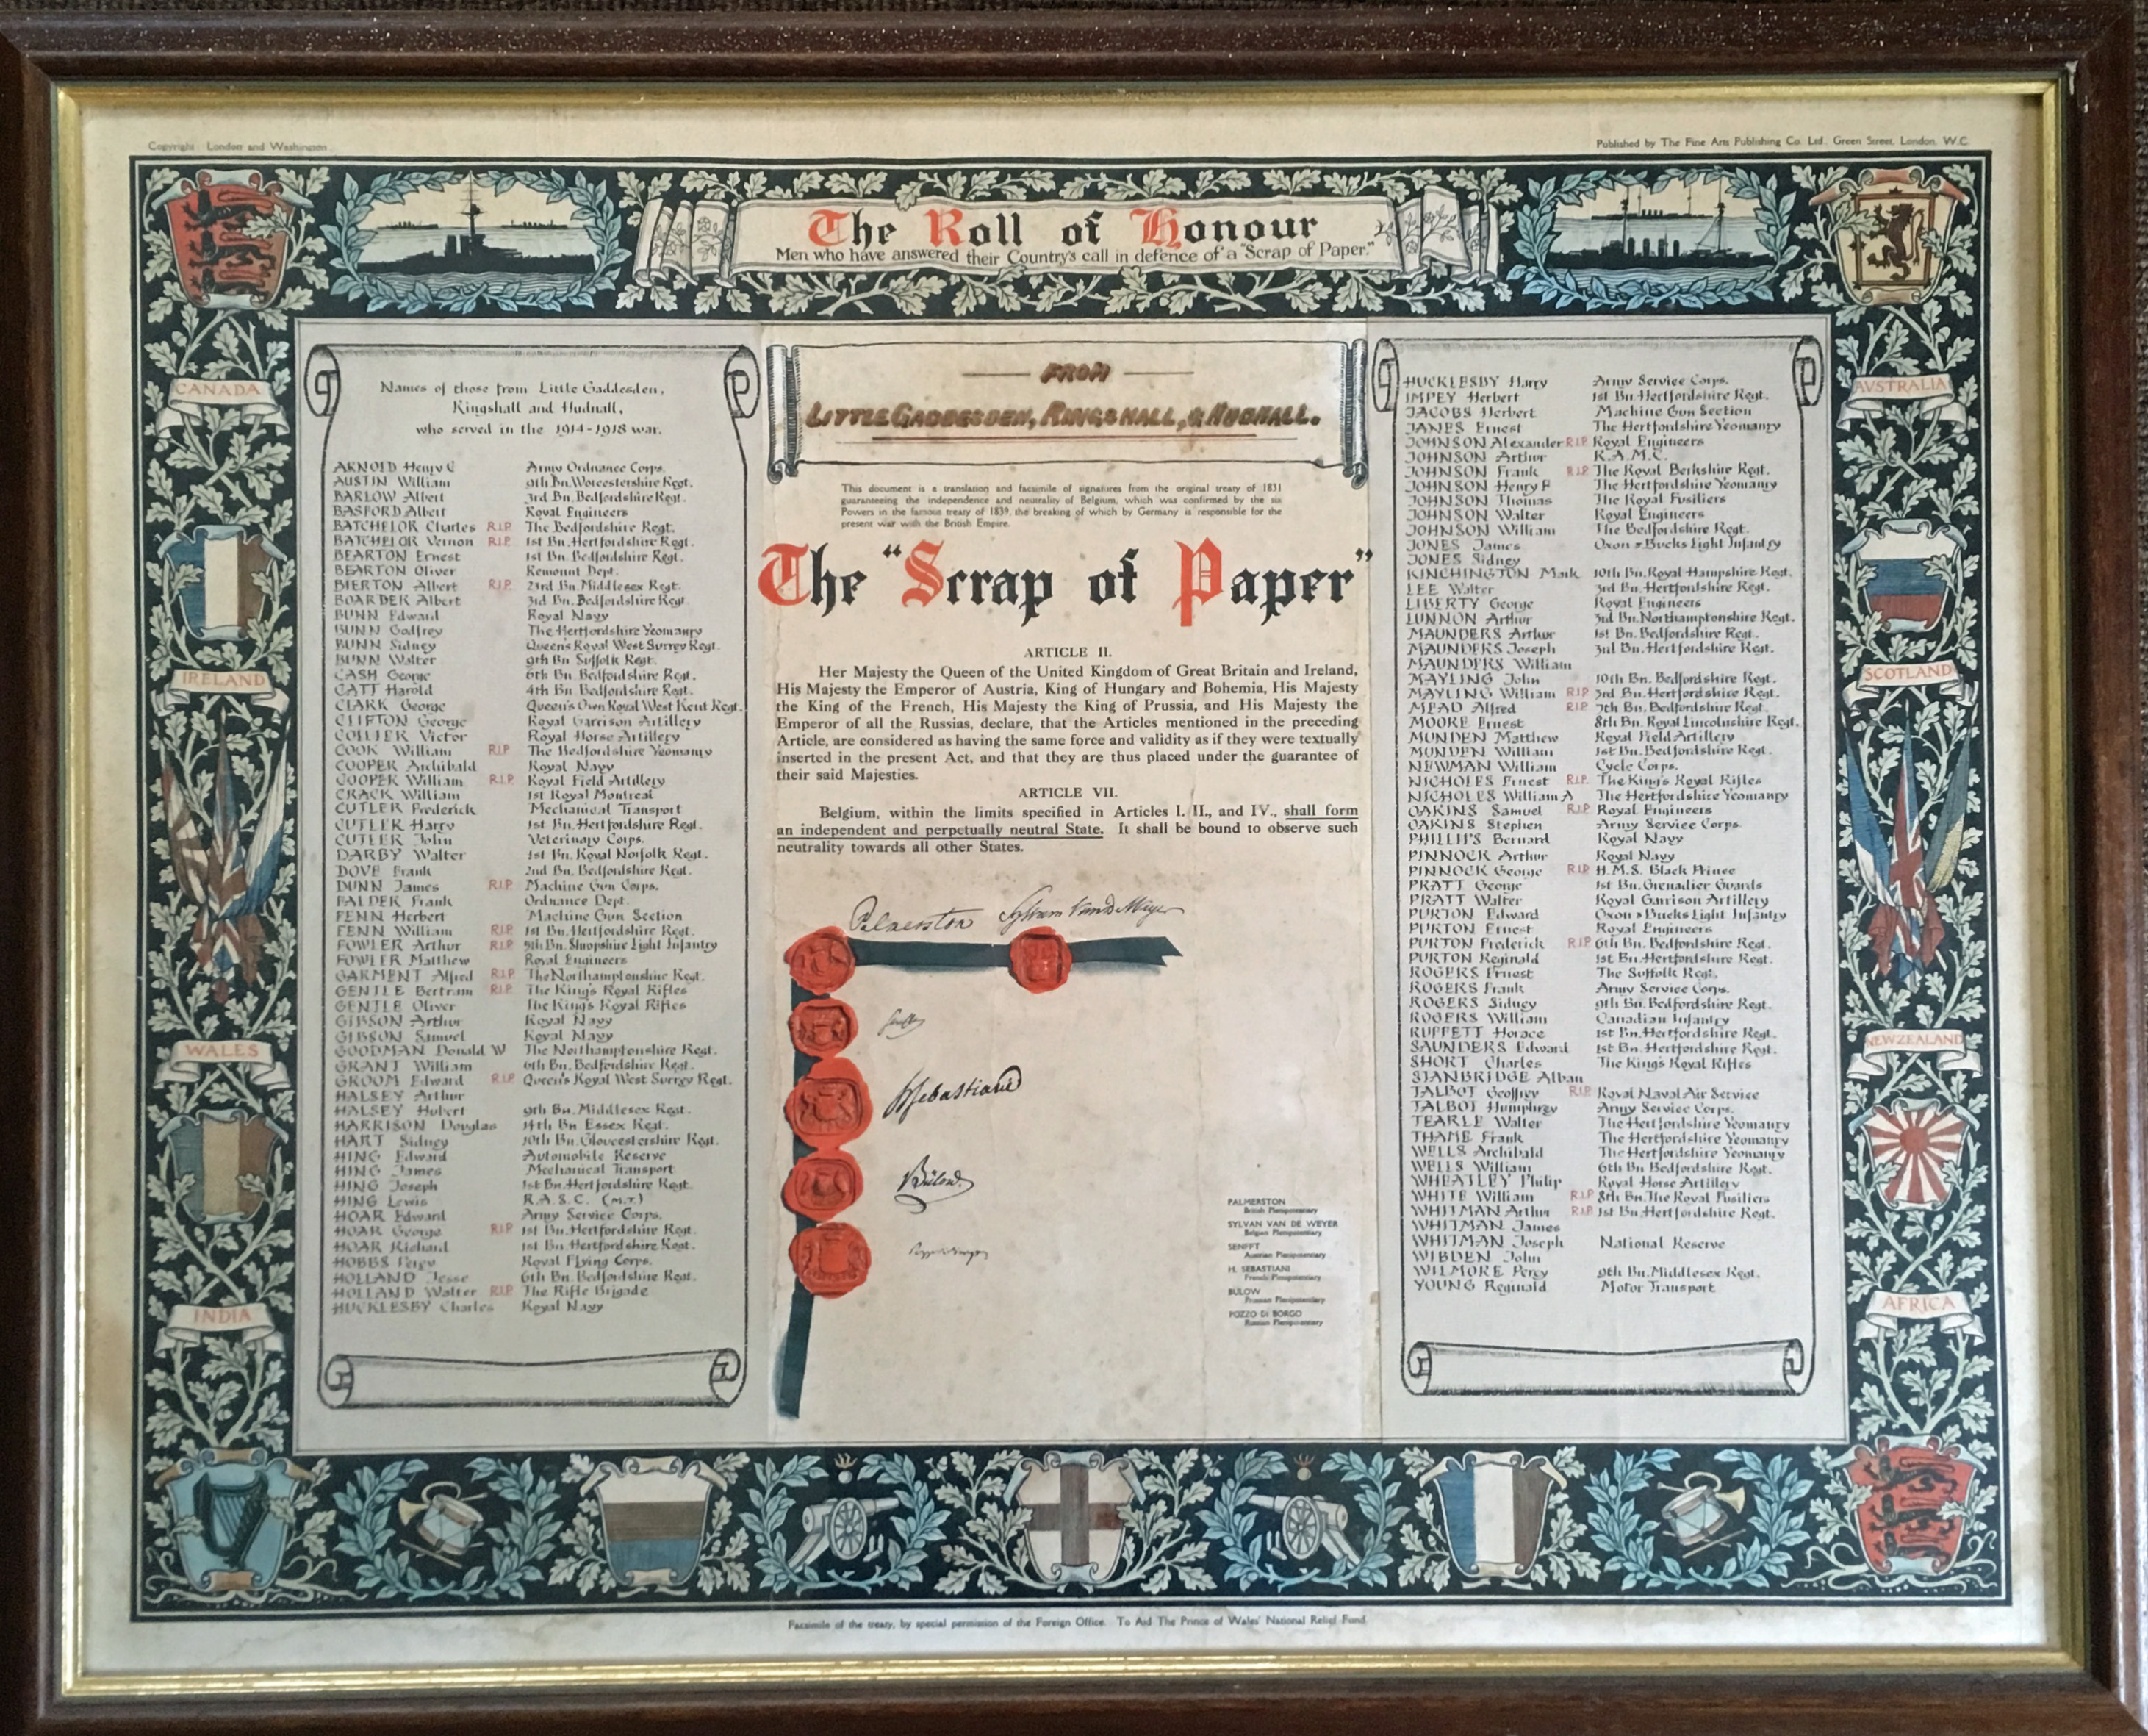 Photo of Church Roll of Honour